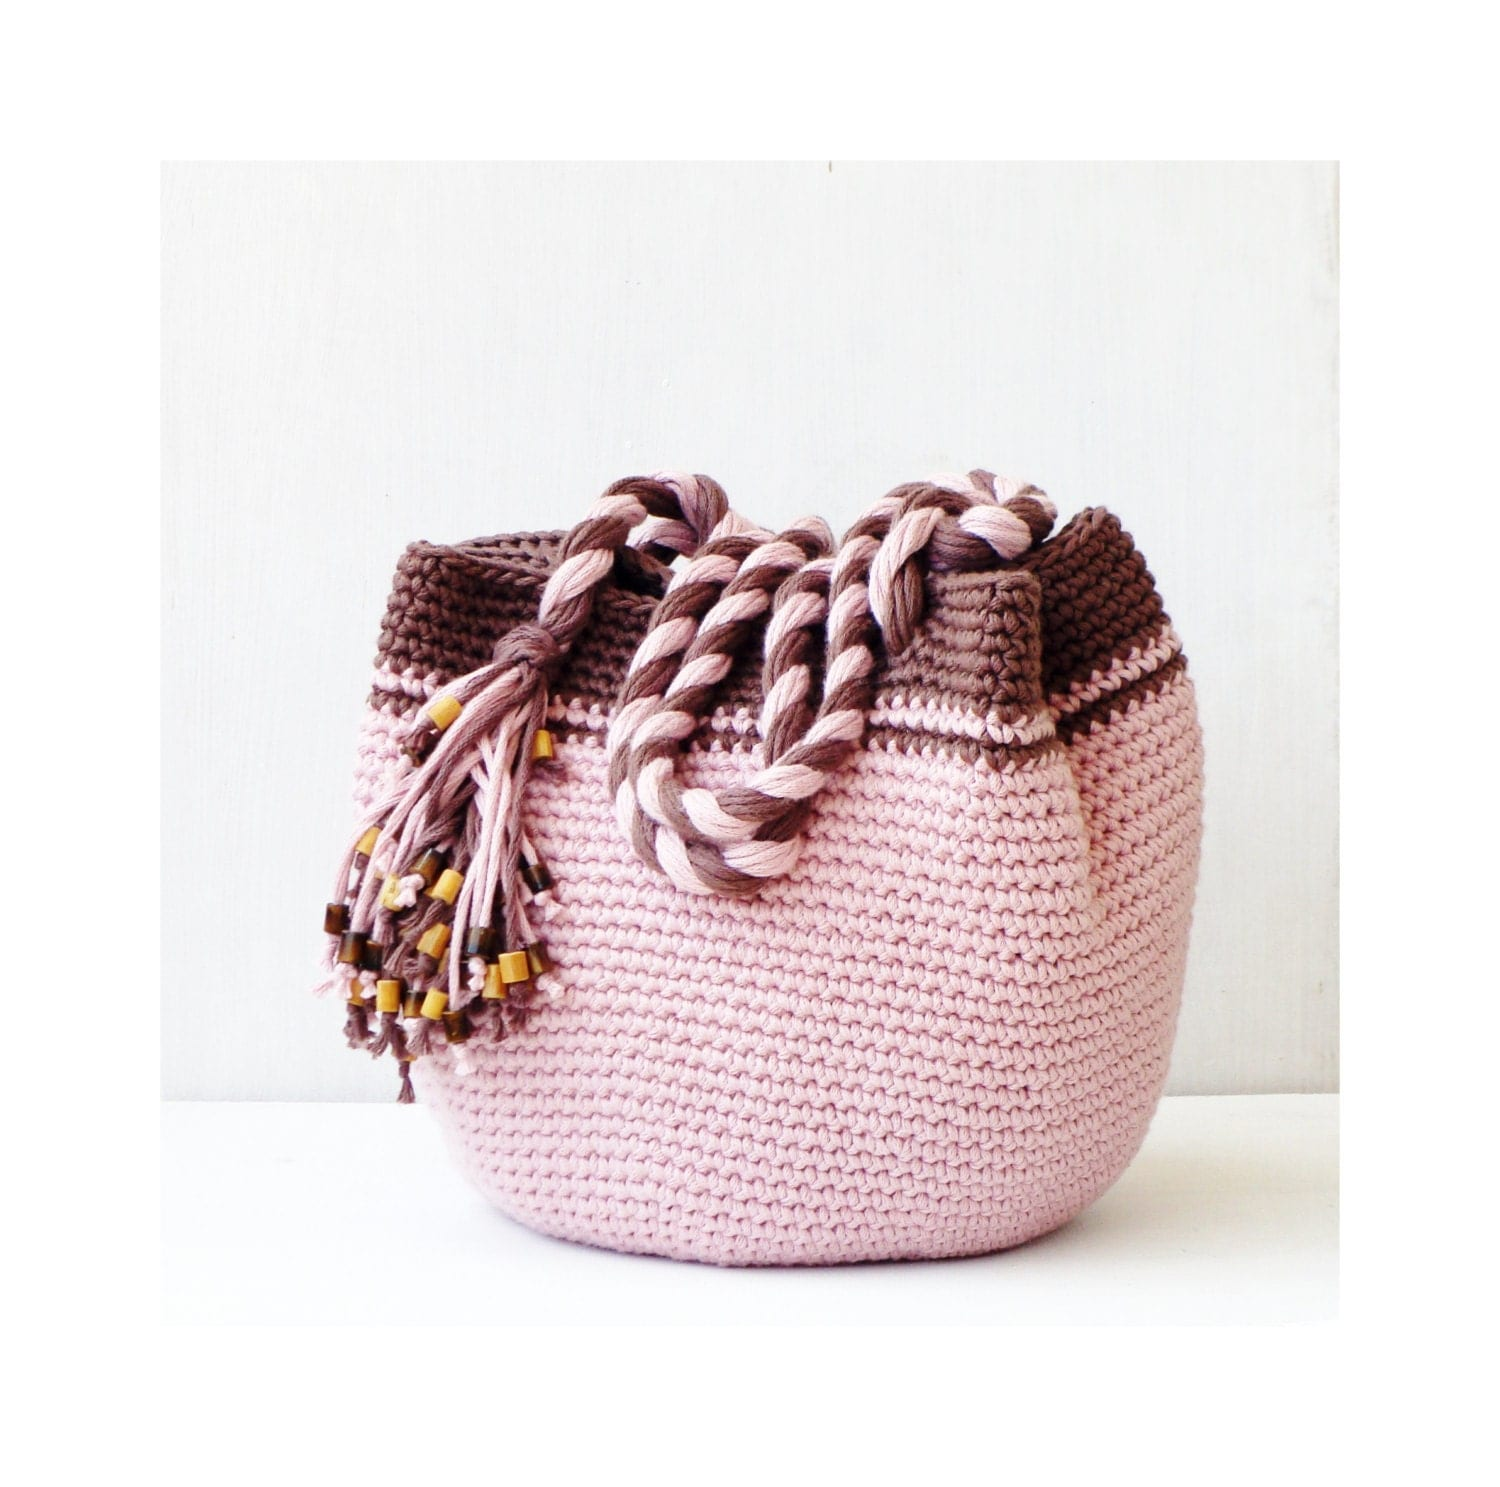 Crochet Boho Bag : Pink and brown boho purse spring crochet bag crochet by zolayka